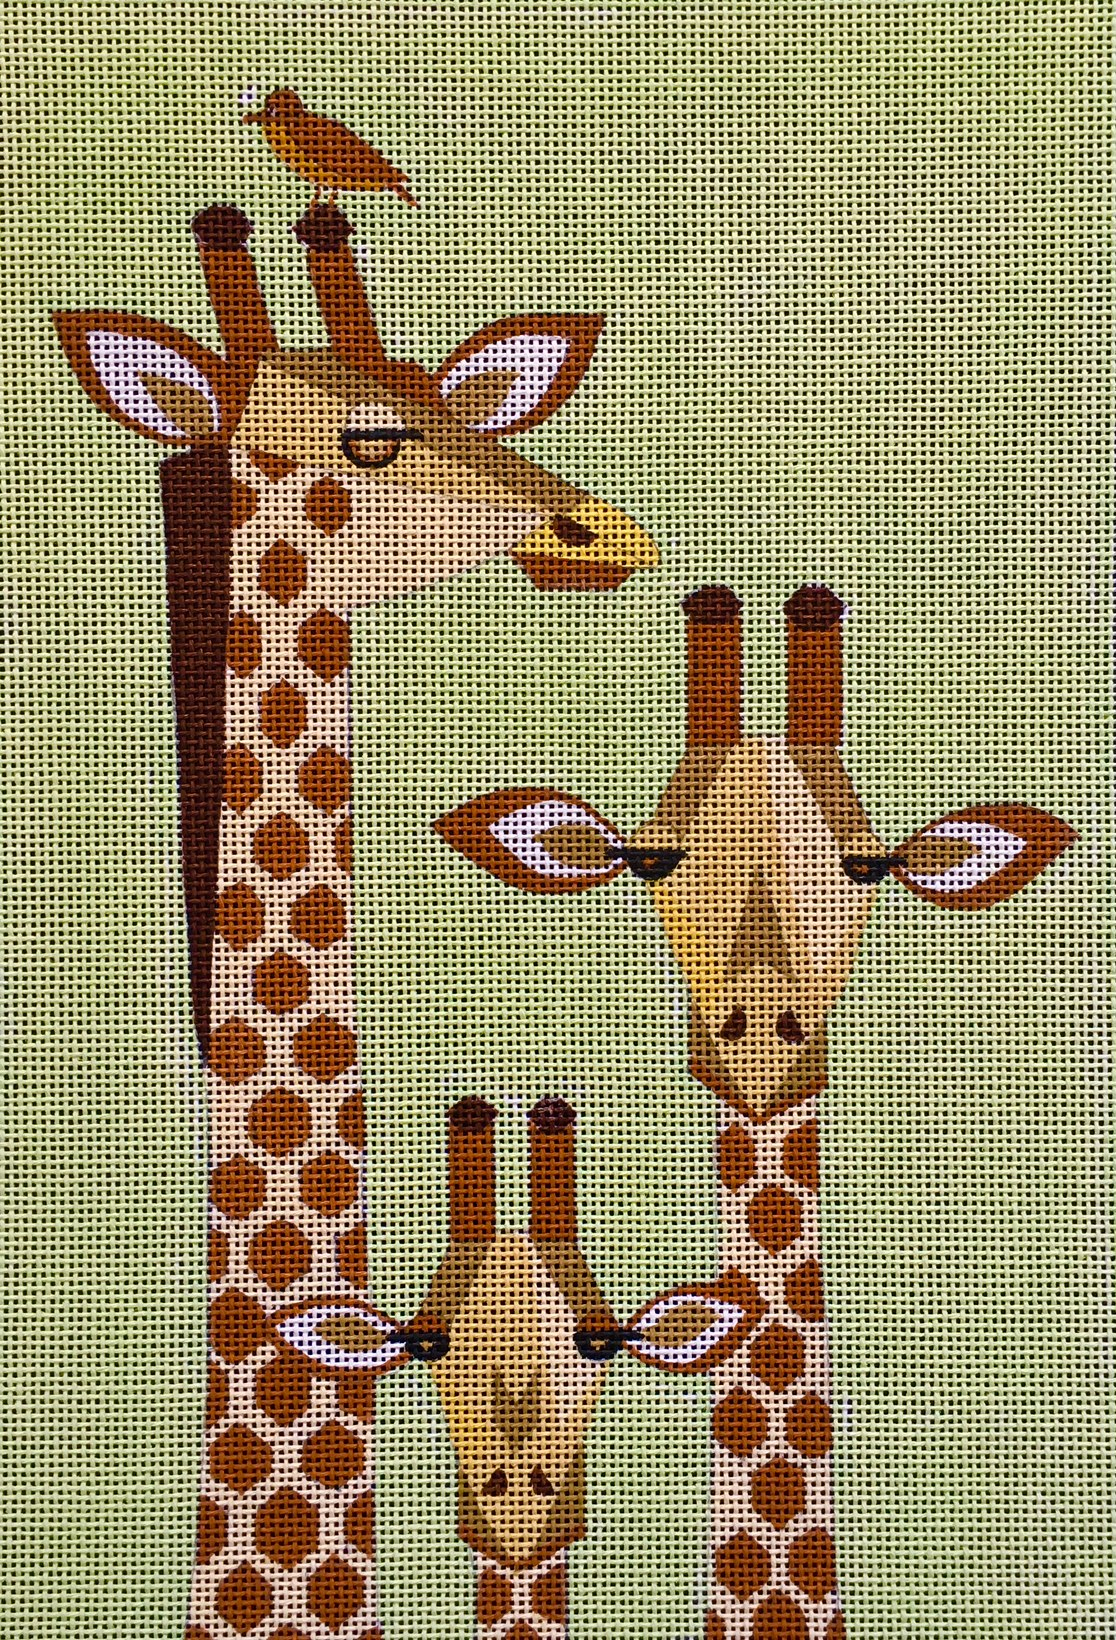 SP-011 Giraffe Family